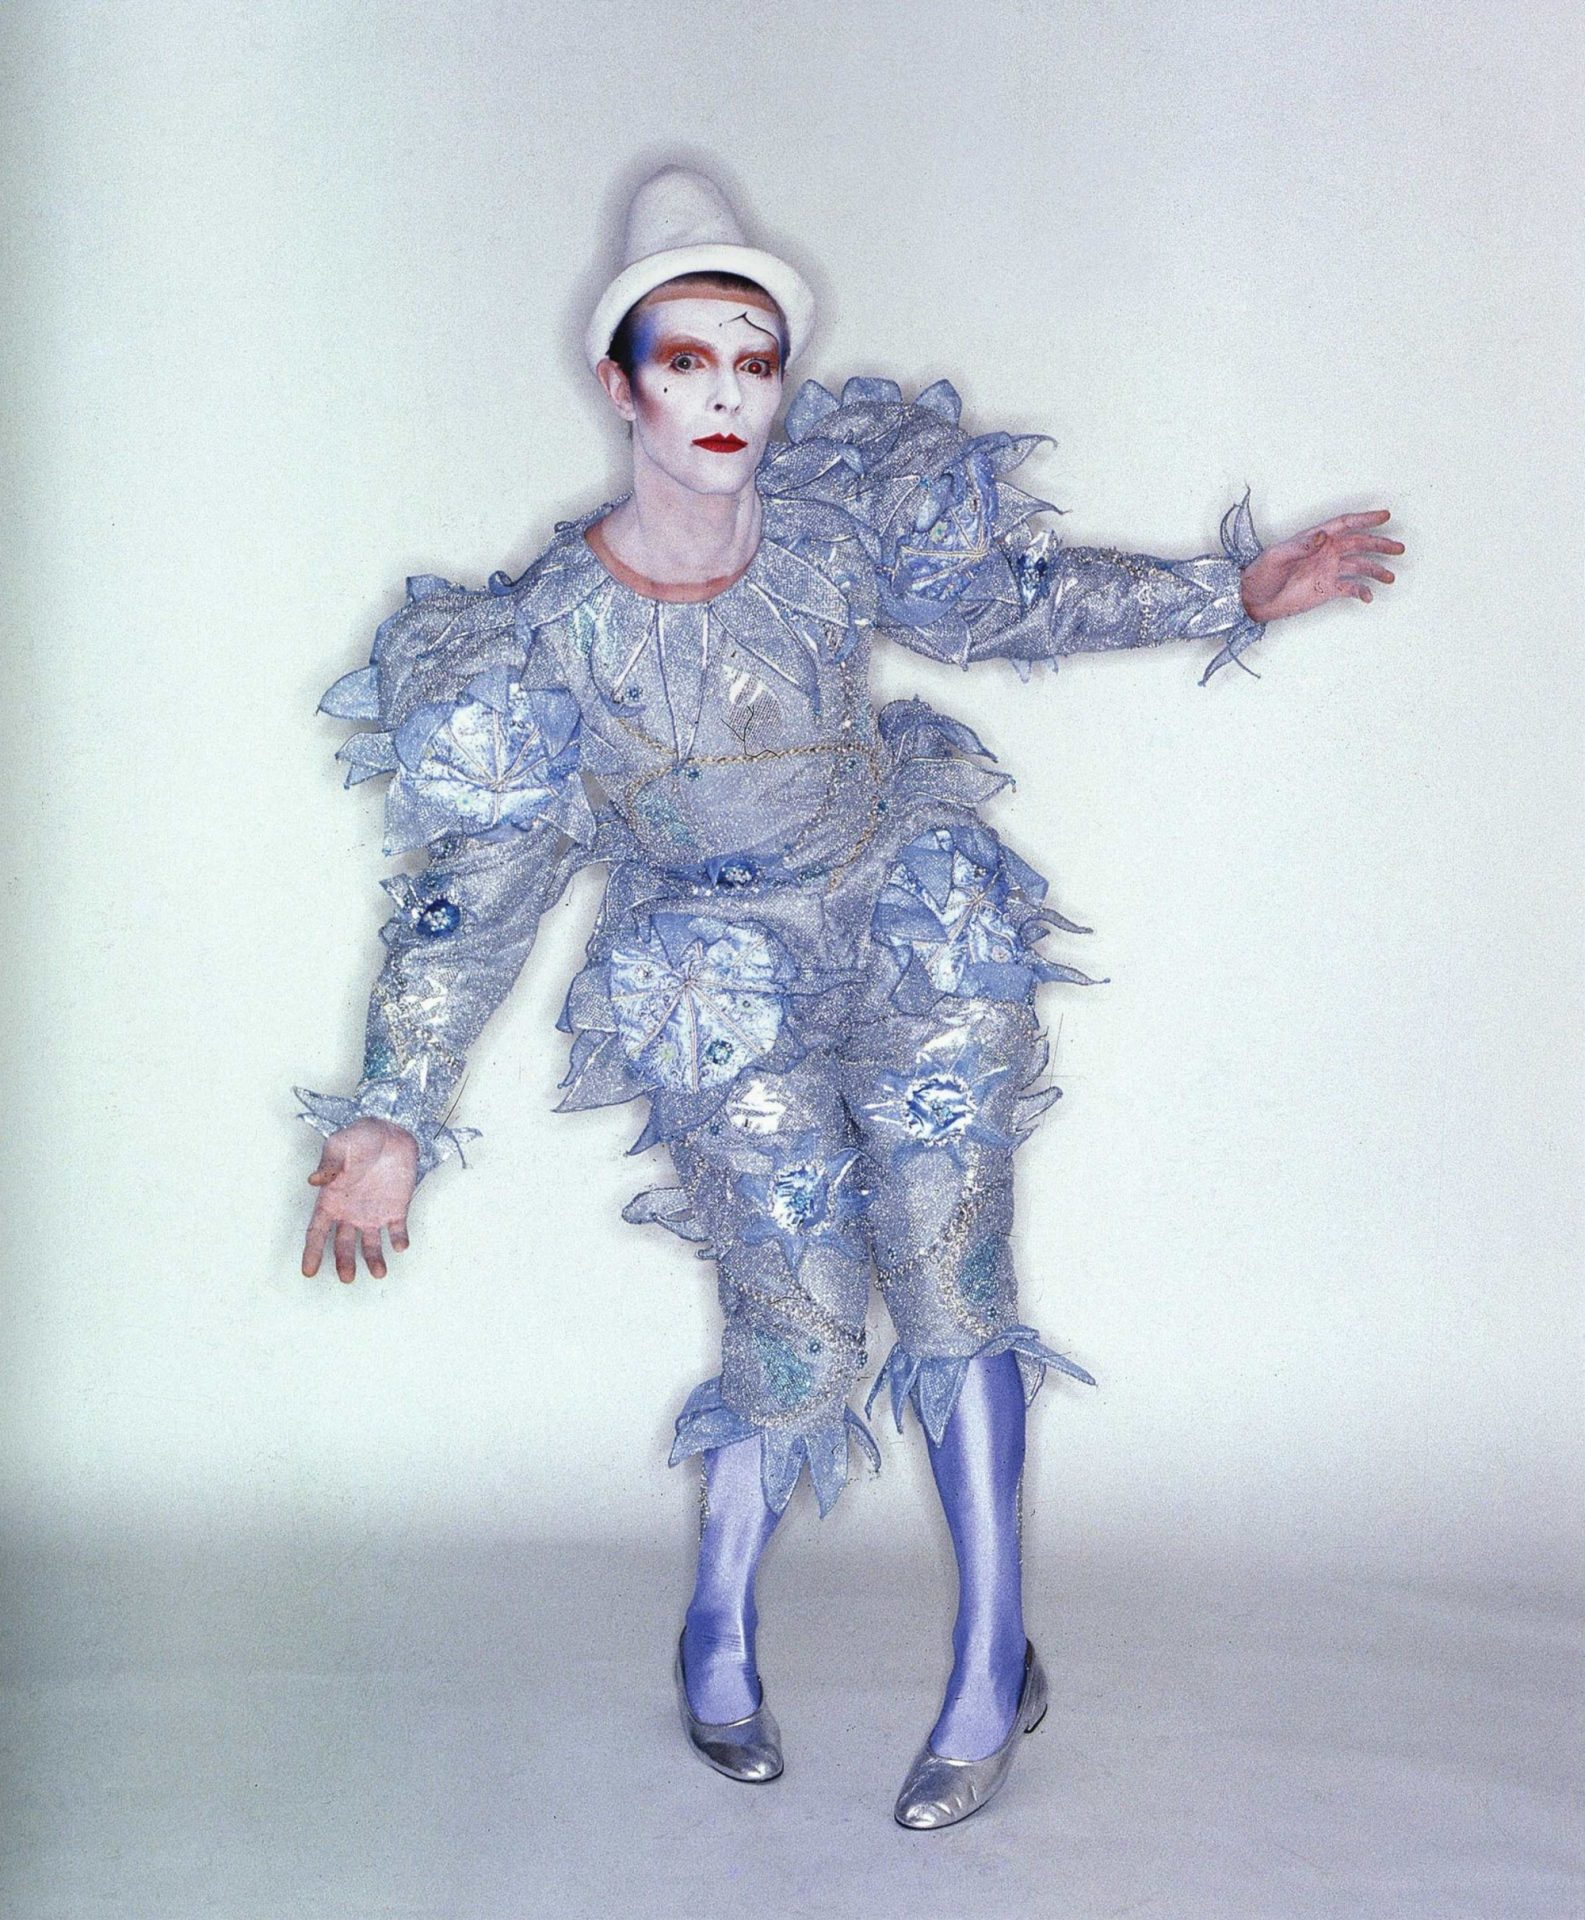 David Bowie em Ashes to Ashes